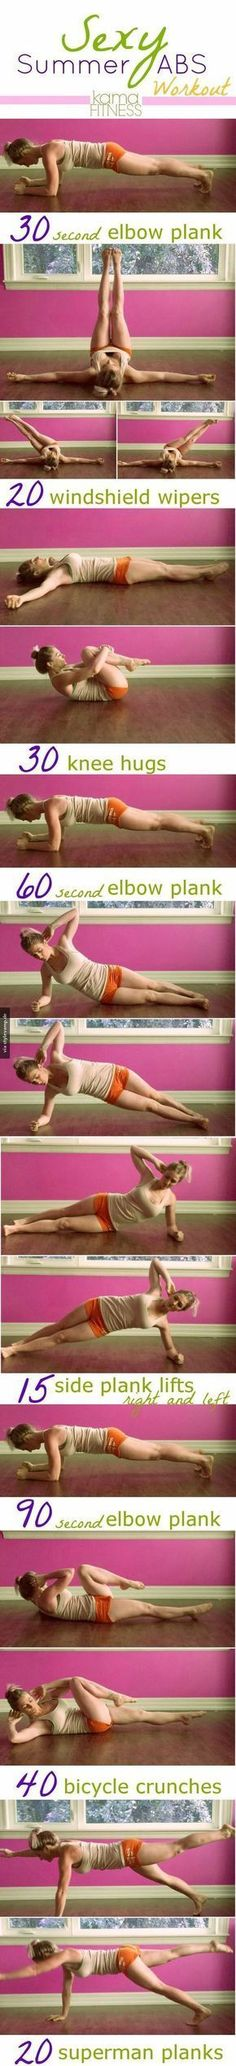 Abs workout (Burn Fat Thighs)